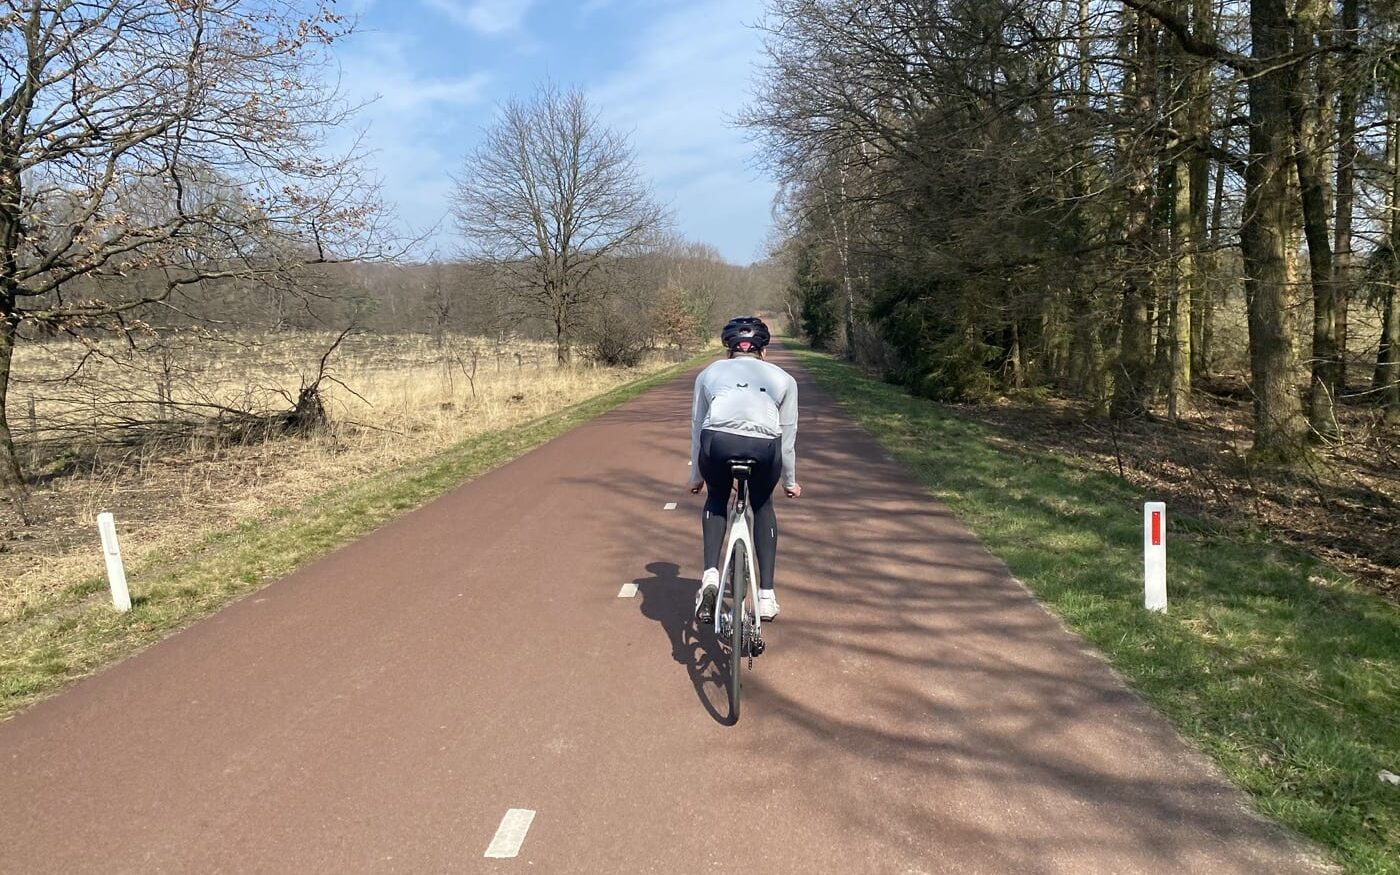 Cyclists on the disused road through the nature reserve 'Nationaal Park De Meinweg'.